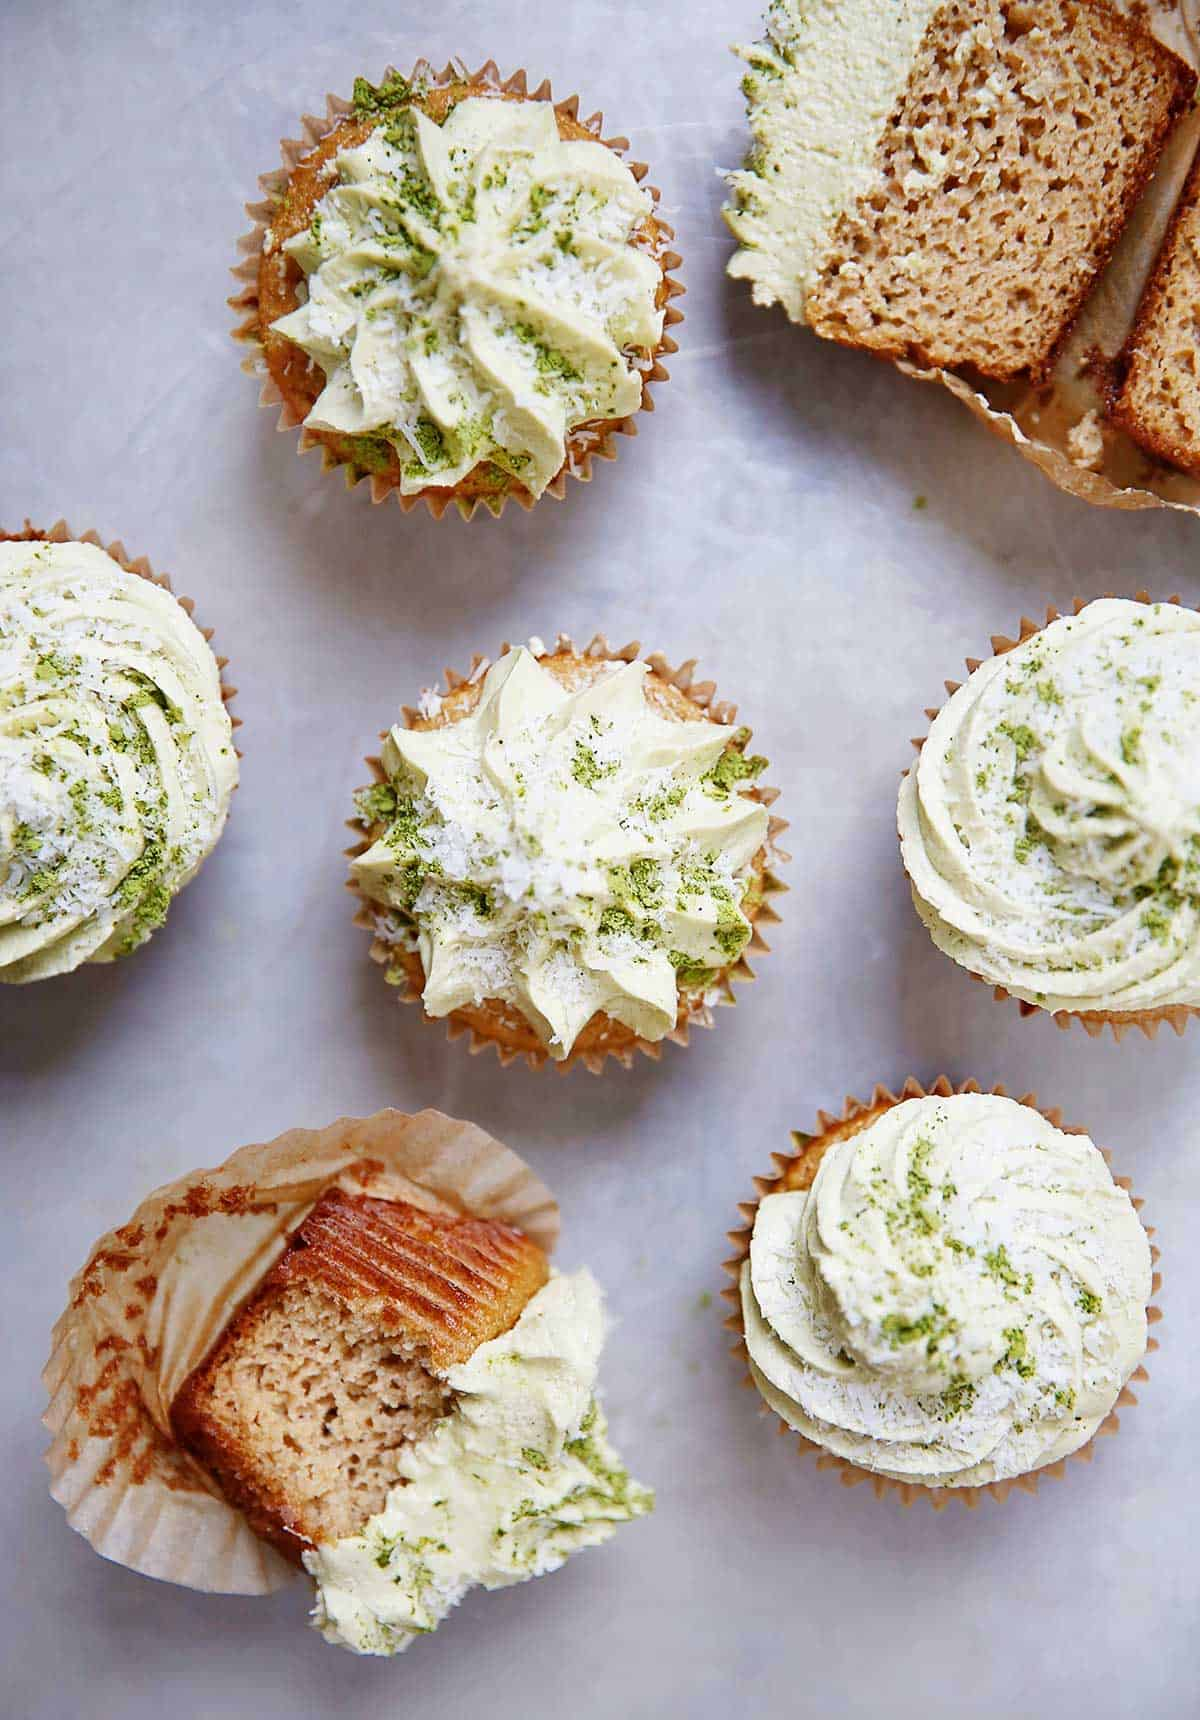 Paleo Cupcakes With Matcha Coconut Buttercream Frosting